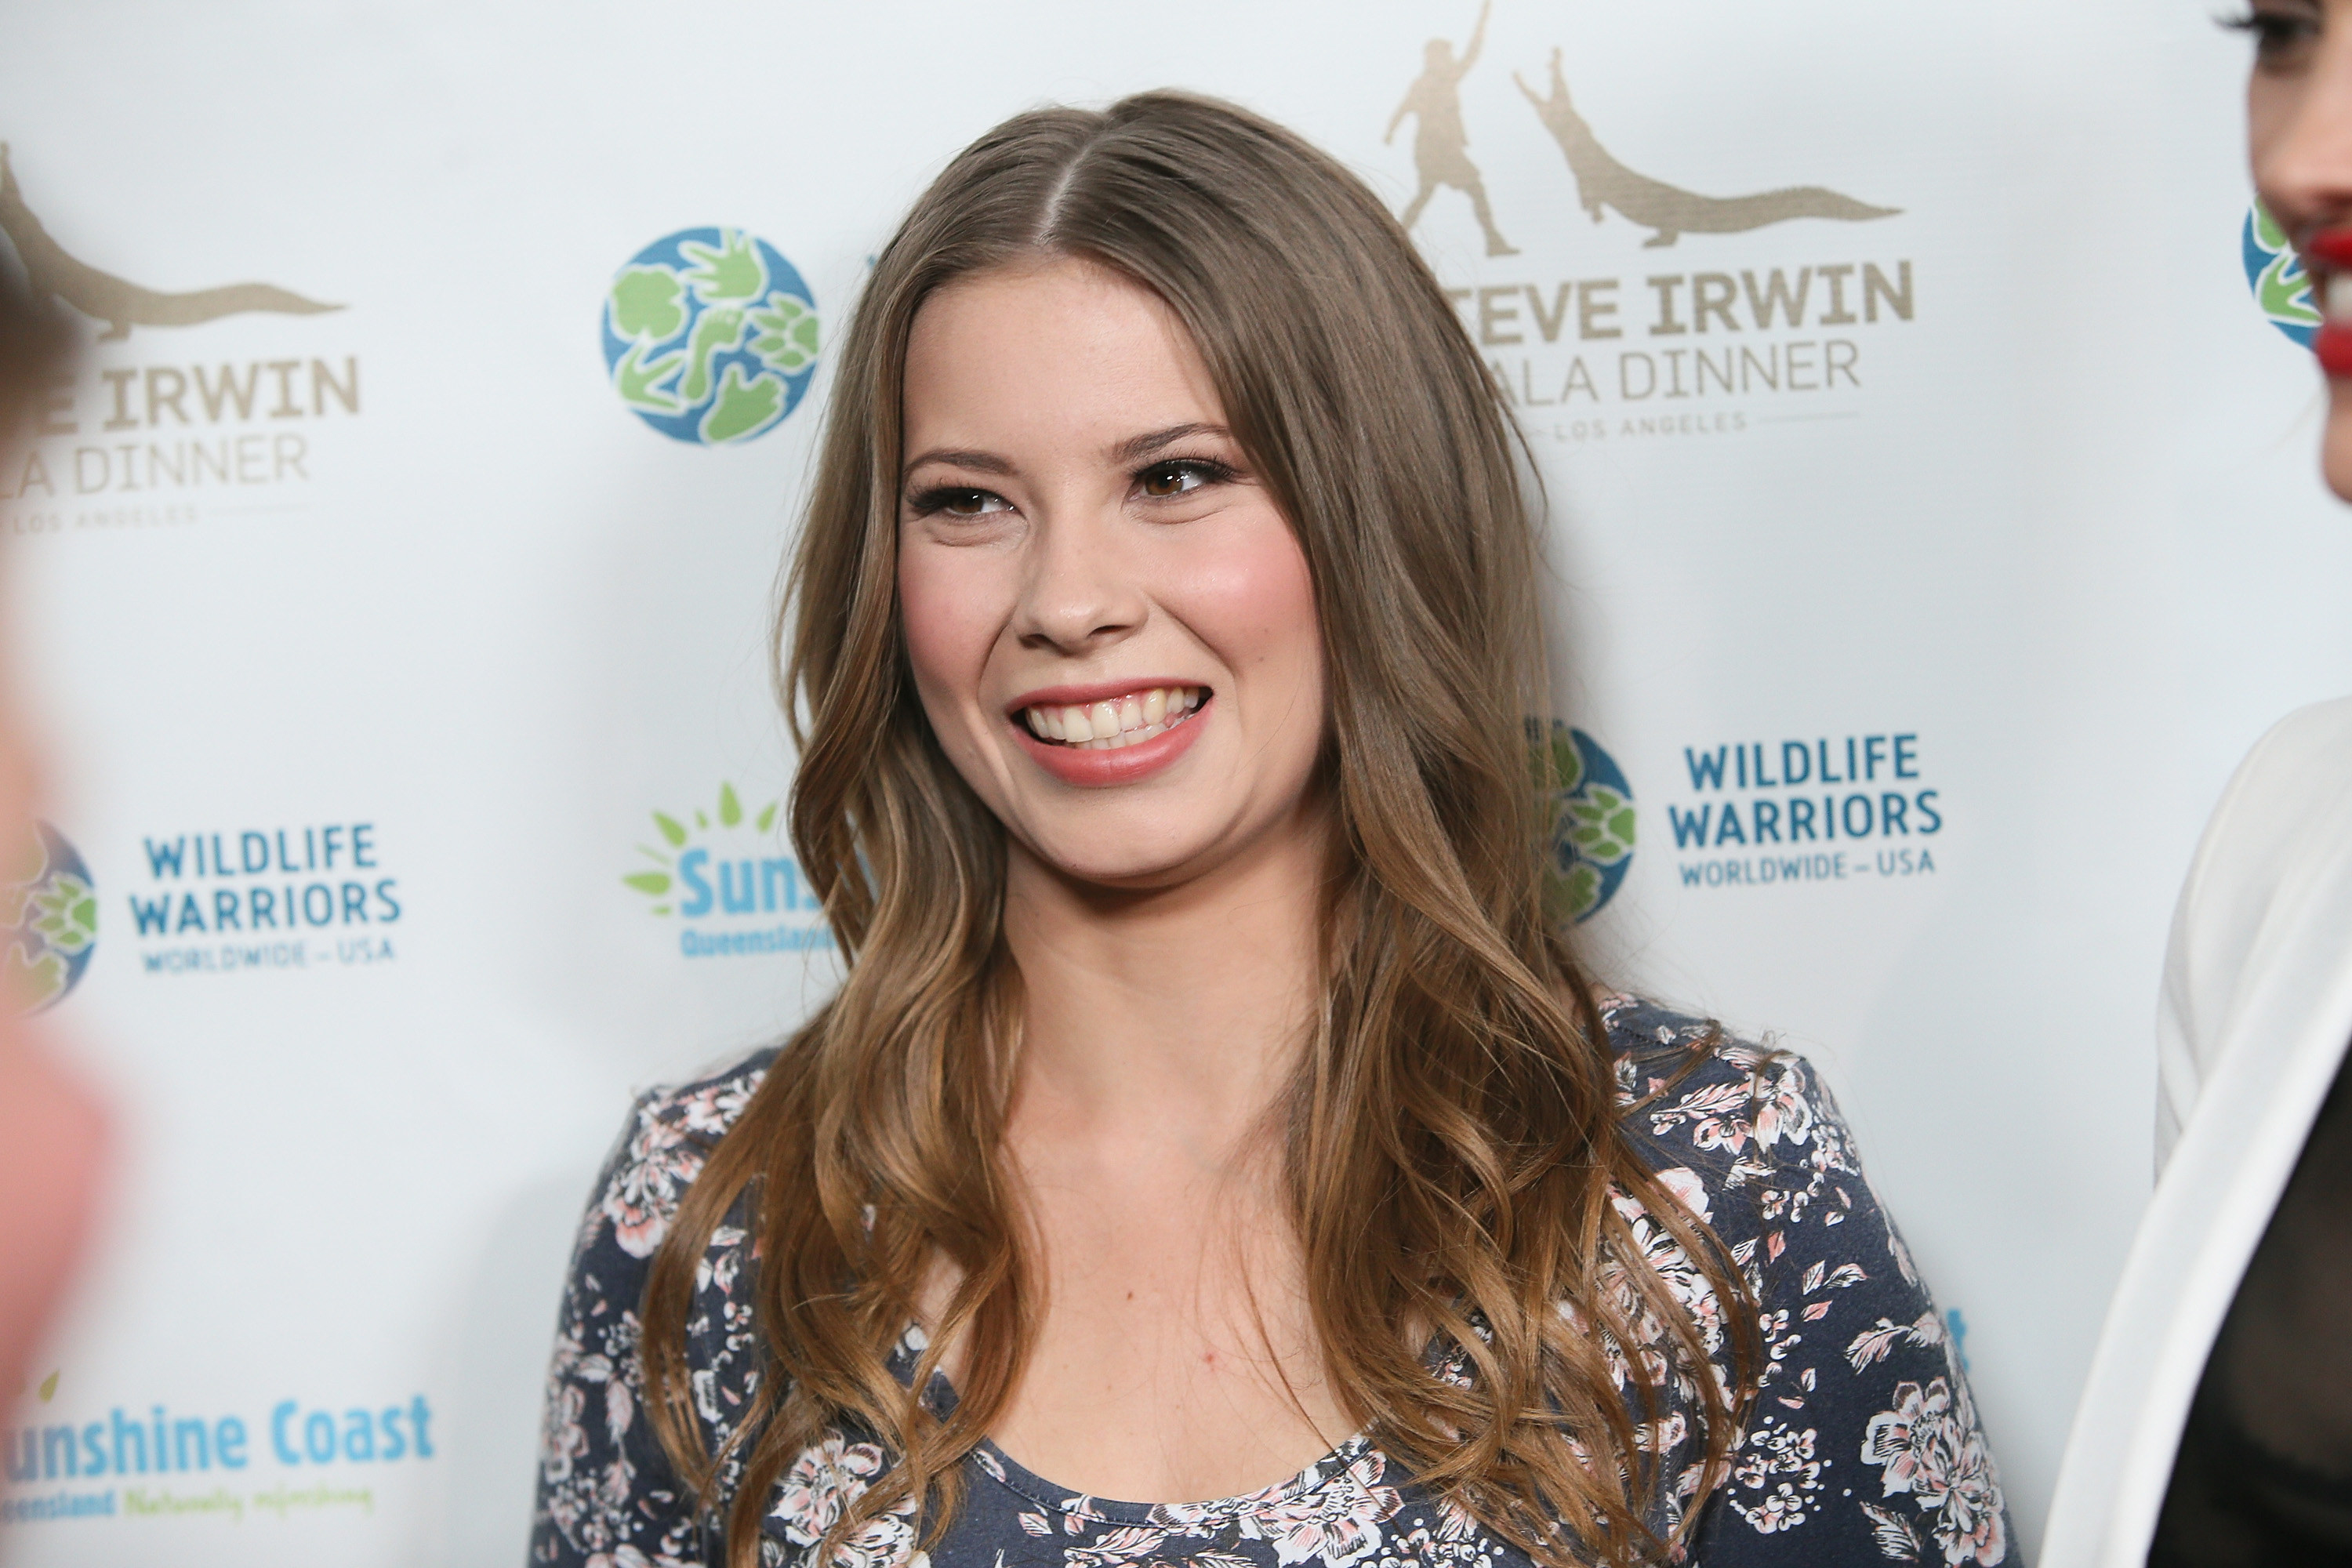 Actress Bindi Irwin attends the Steve Irwin Gala Dinner at the SLS Hotel at Beverly Hills on May 13, 2017 in Los Angeles, California